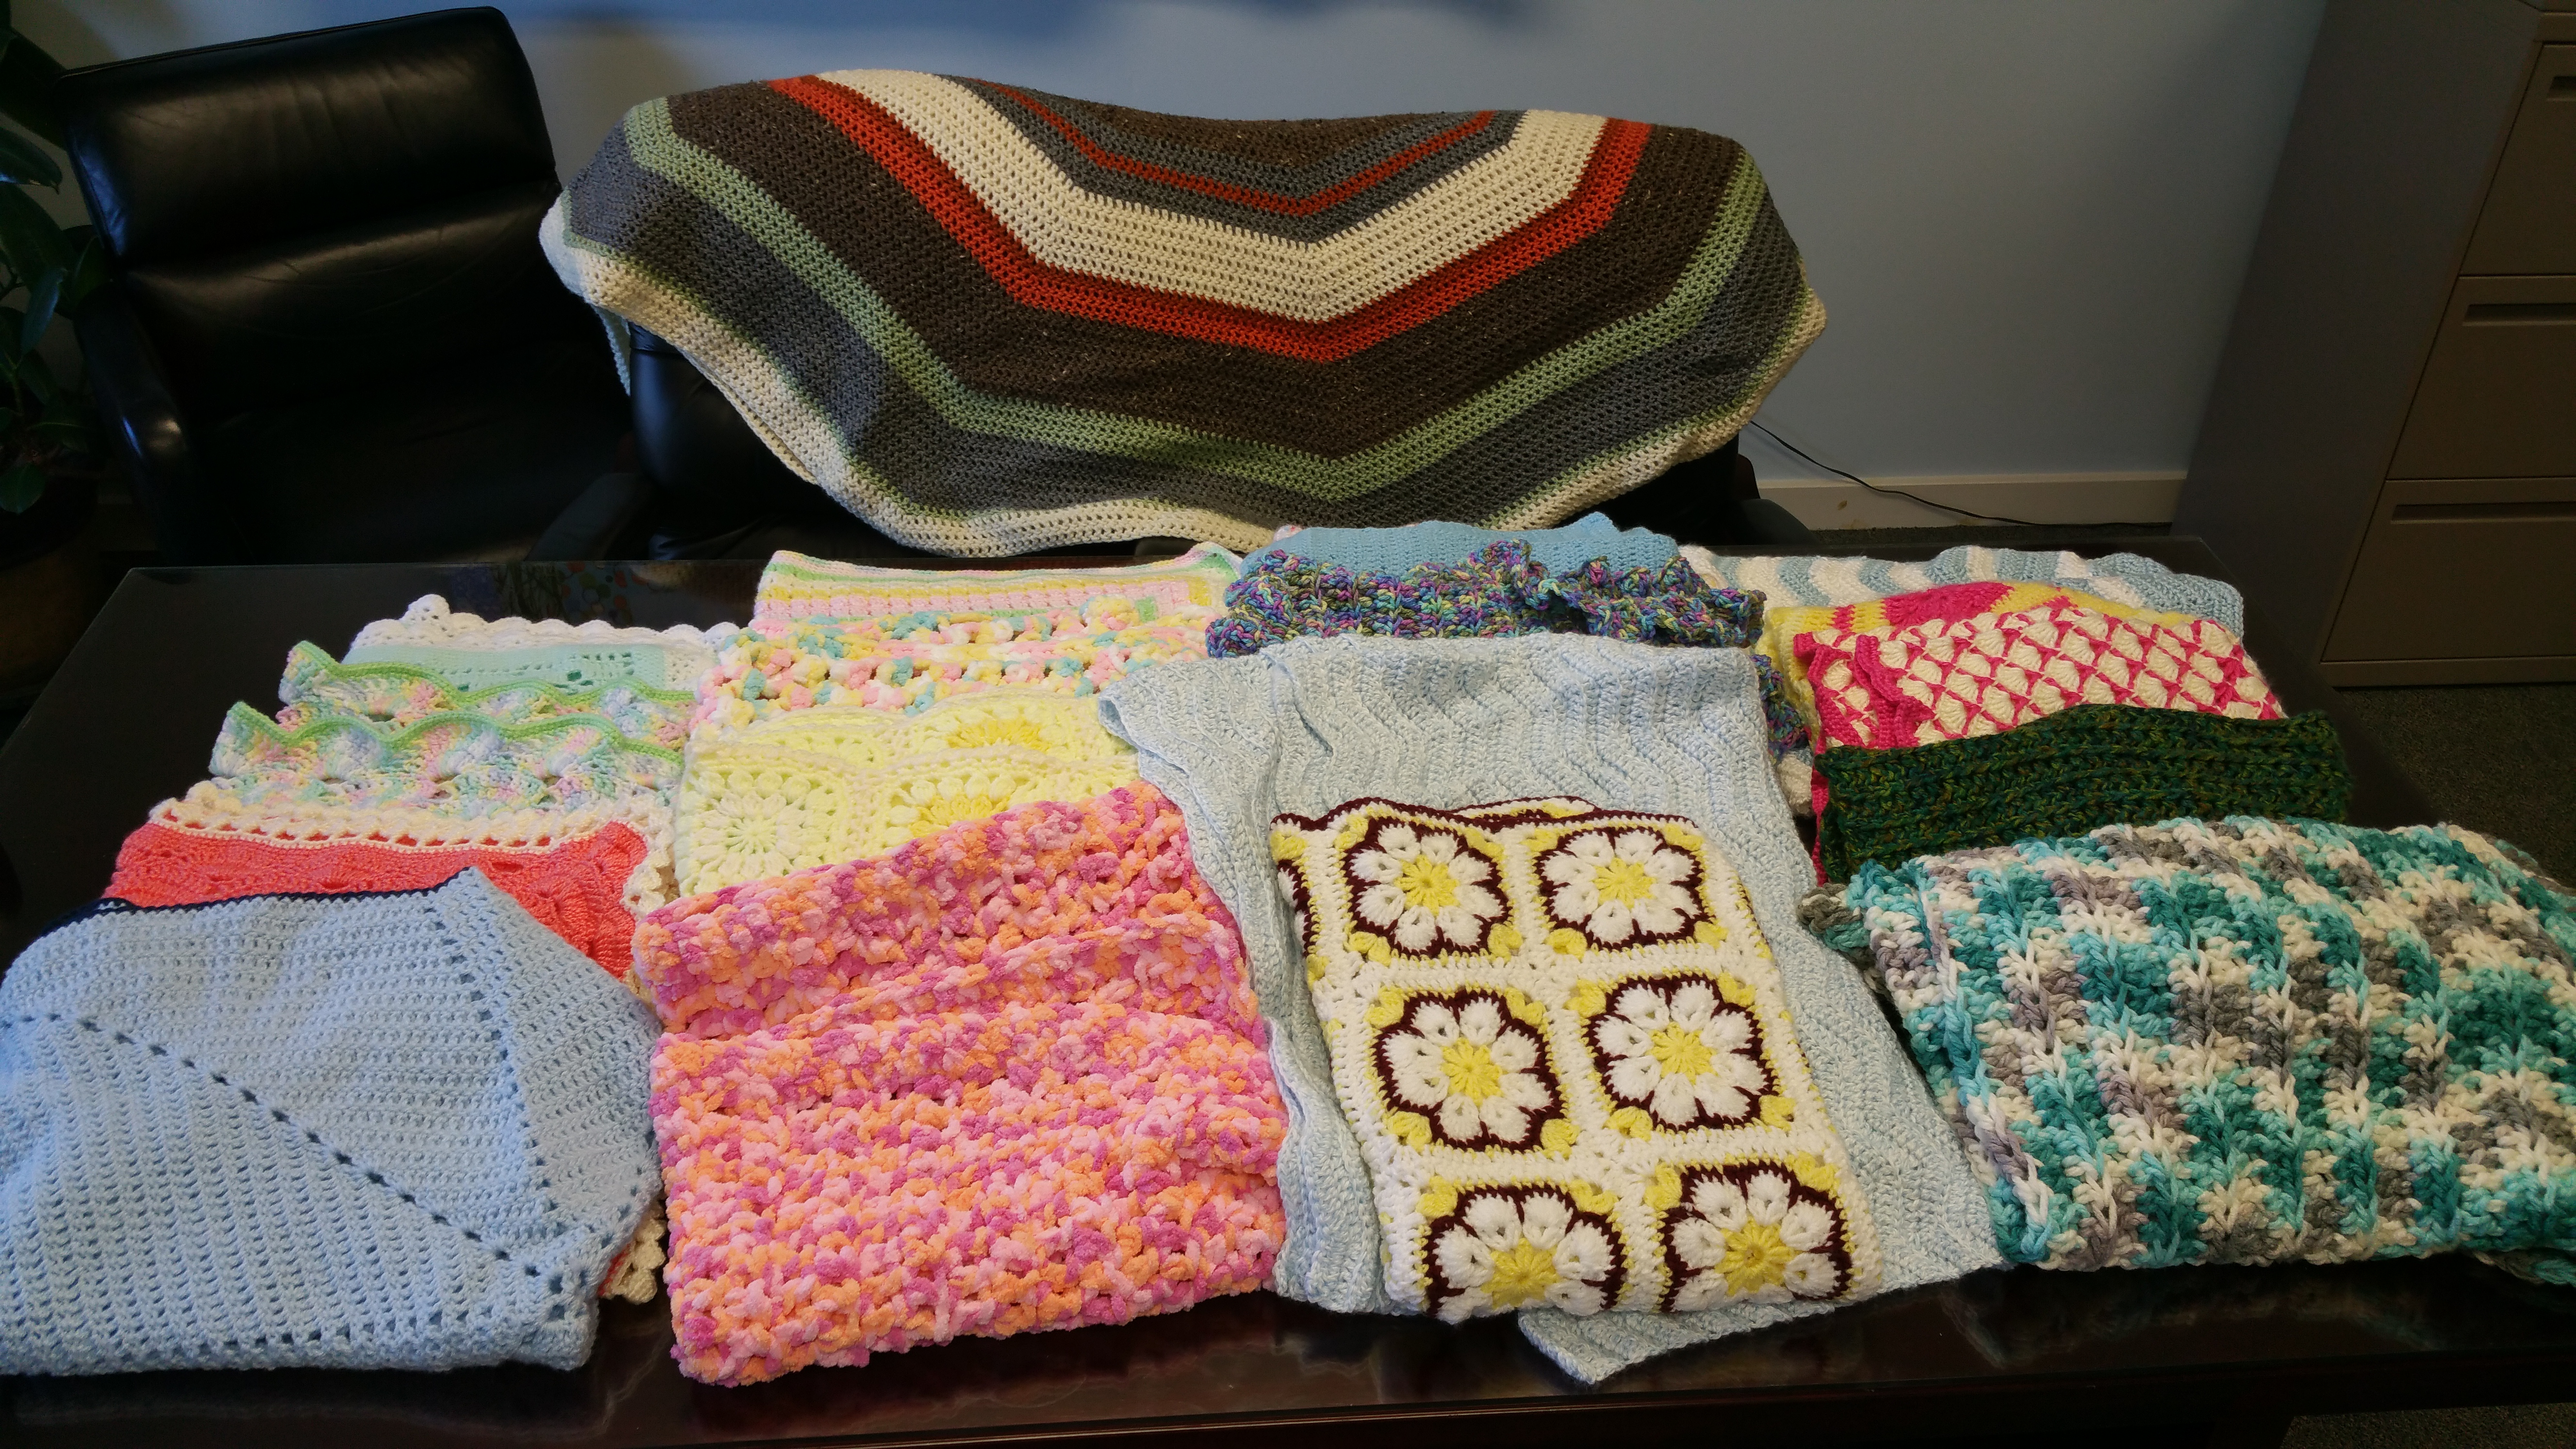 Baby blankets for St Judes project 2 17 2